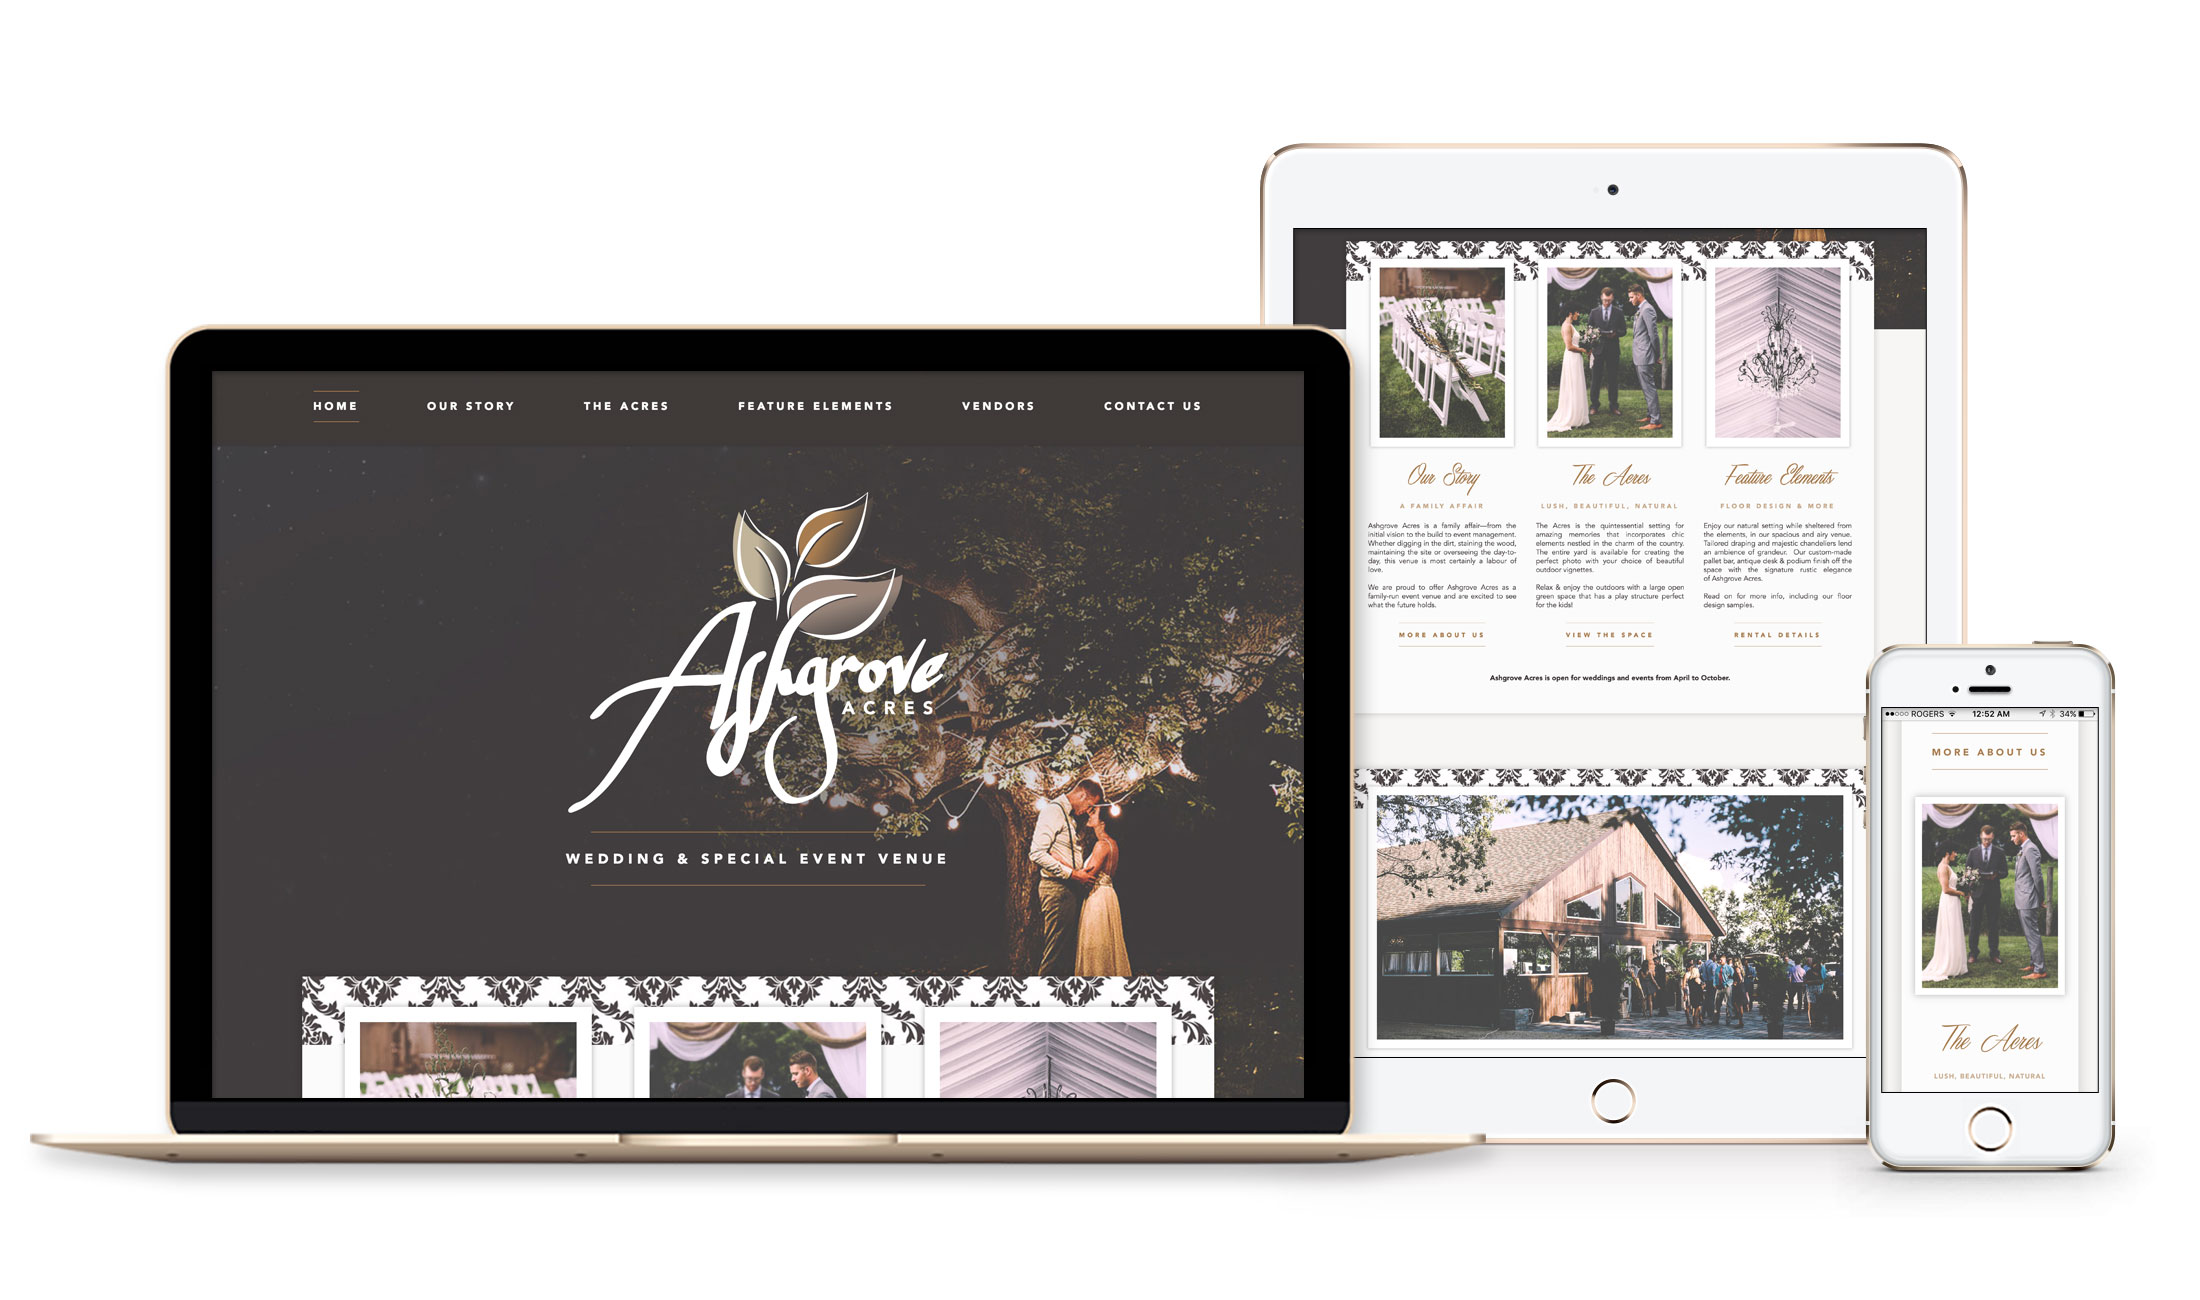 Winnipeg Web Design and Branding, Responsive Website Design for Ashgrove Acres in Winnipeg, Manitoba